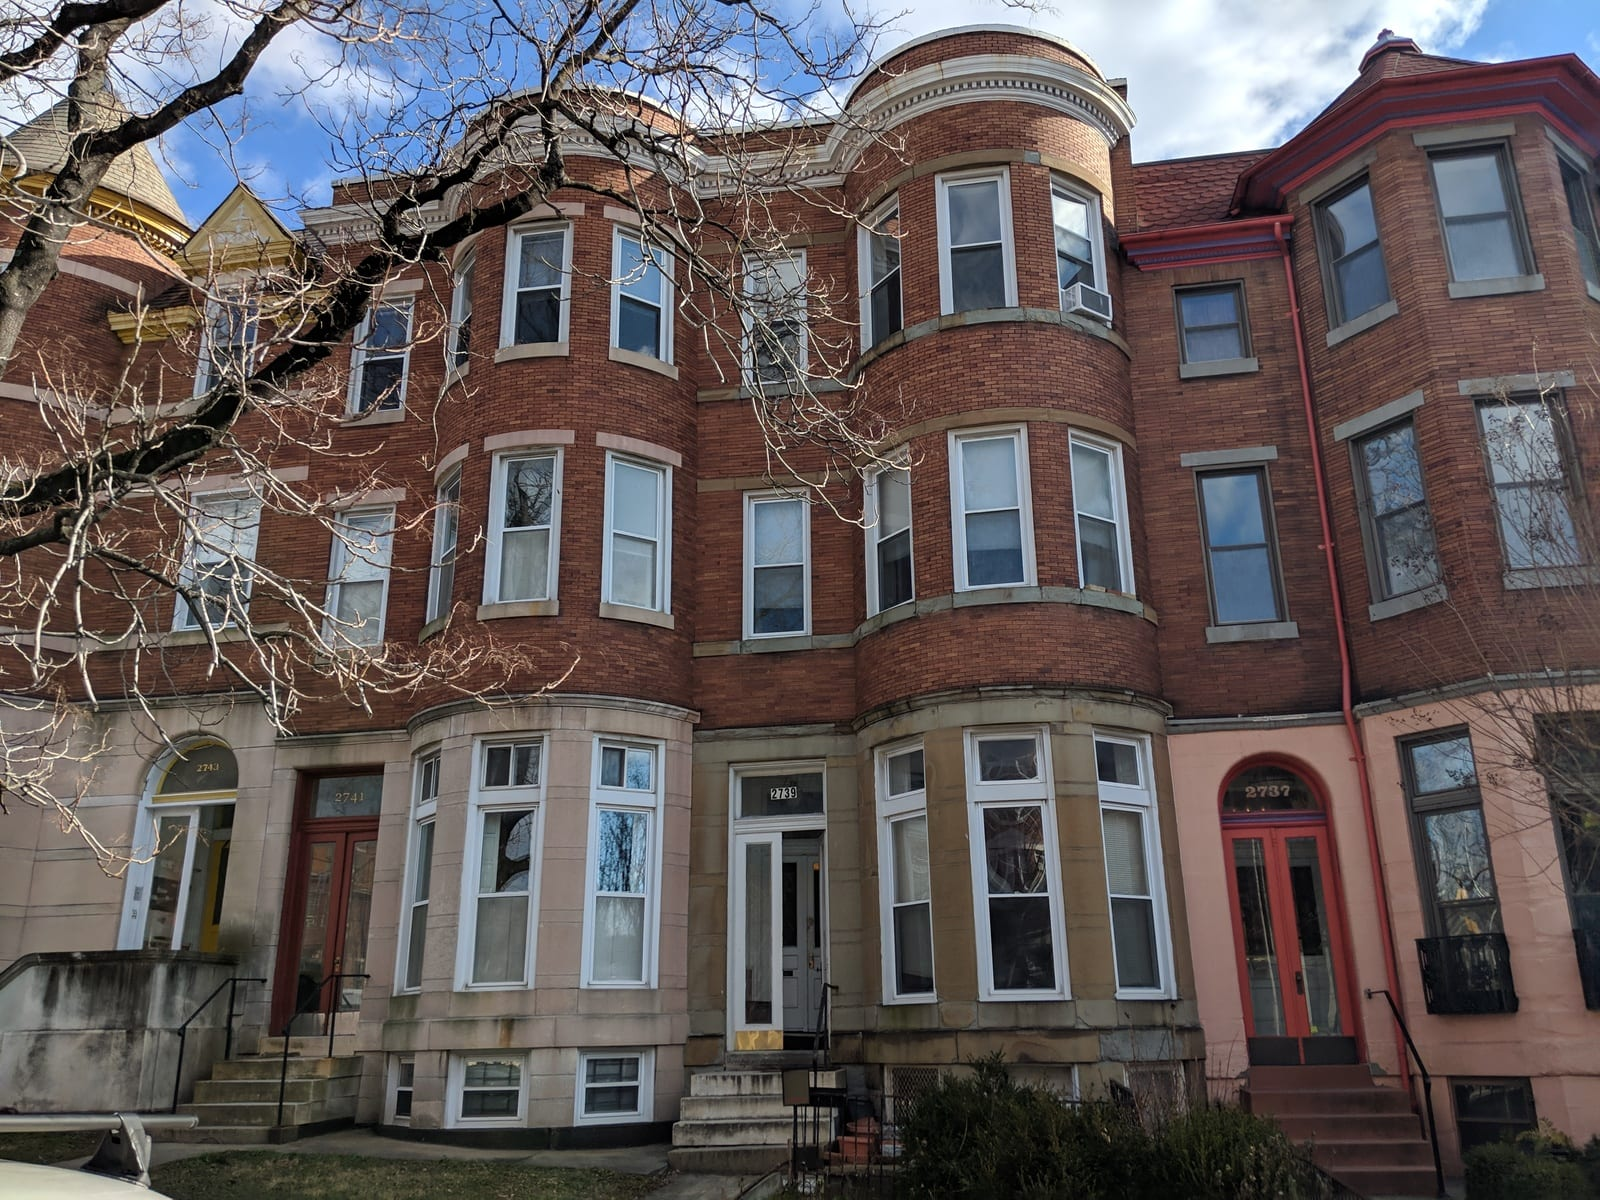 2739 Saint Paul Street:  4 Apartments on a Great Block!